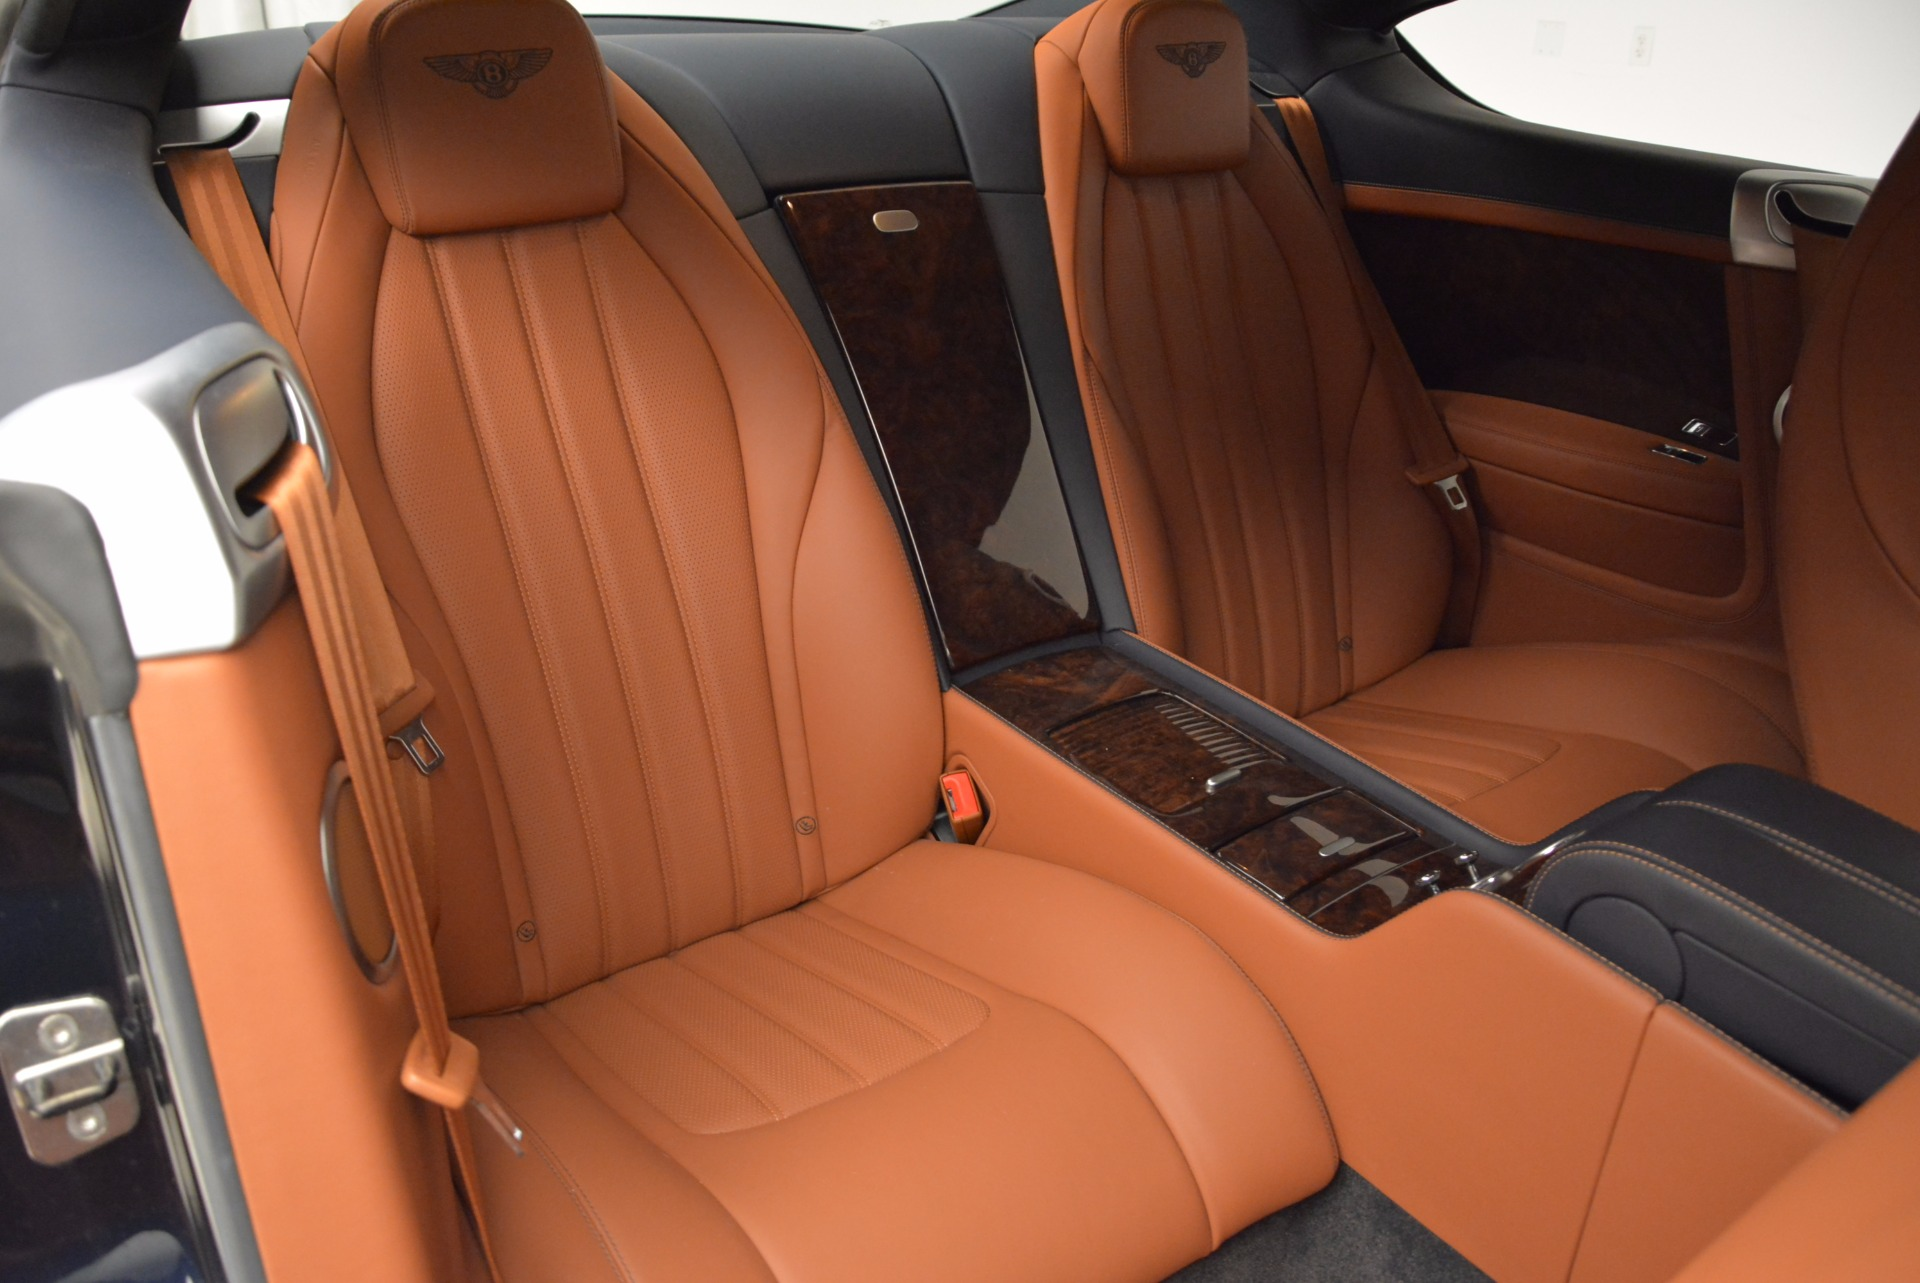 Used 2014 Bentley Continental GT W12 For Sale In Westport, CT 1845_p36